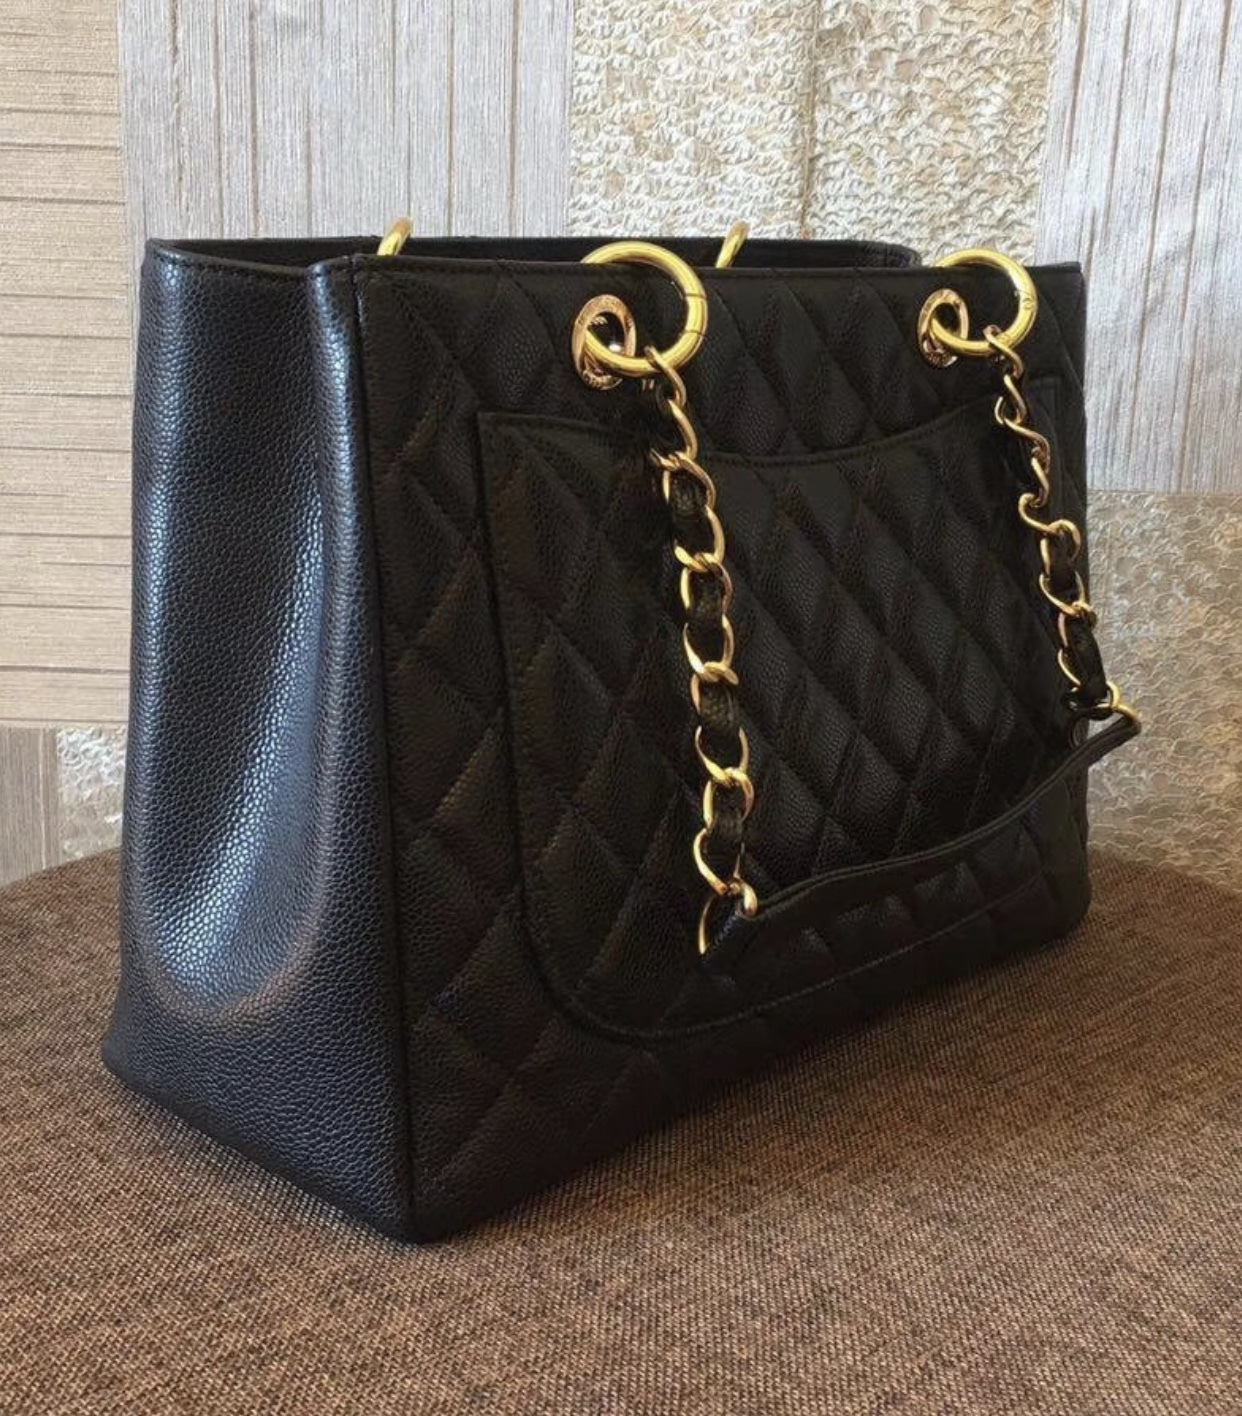 4dbeb6b6ccef AUTHENTIC CHANEL QUILTED CAVIAR GST GRAND SHOPPING TOTE BAG BLACK ...